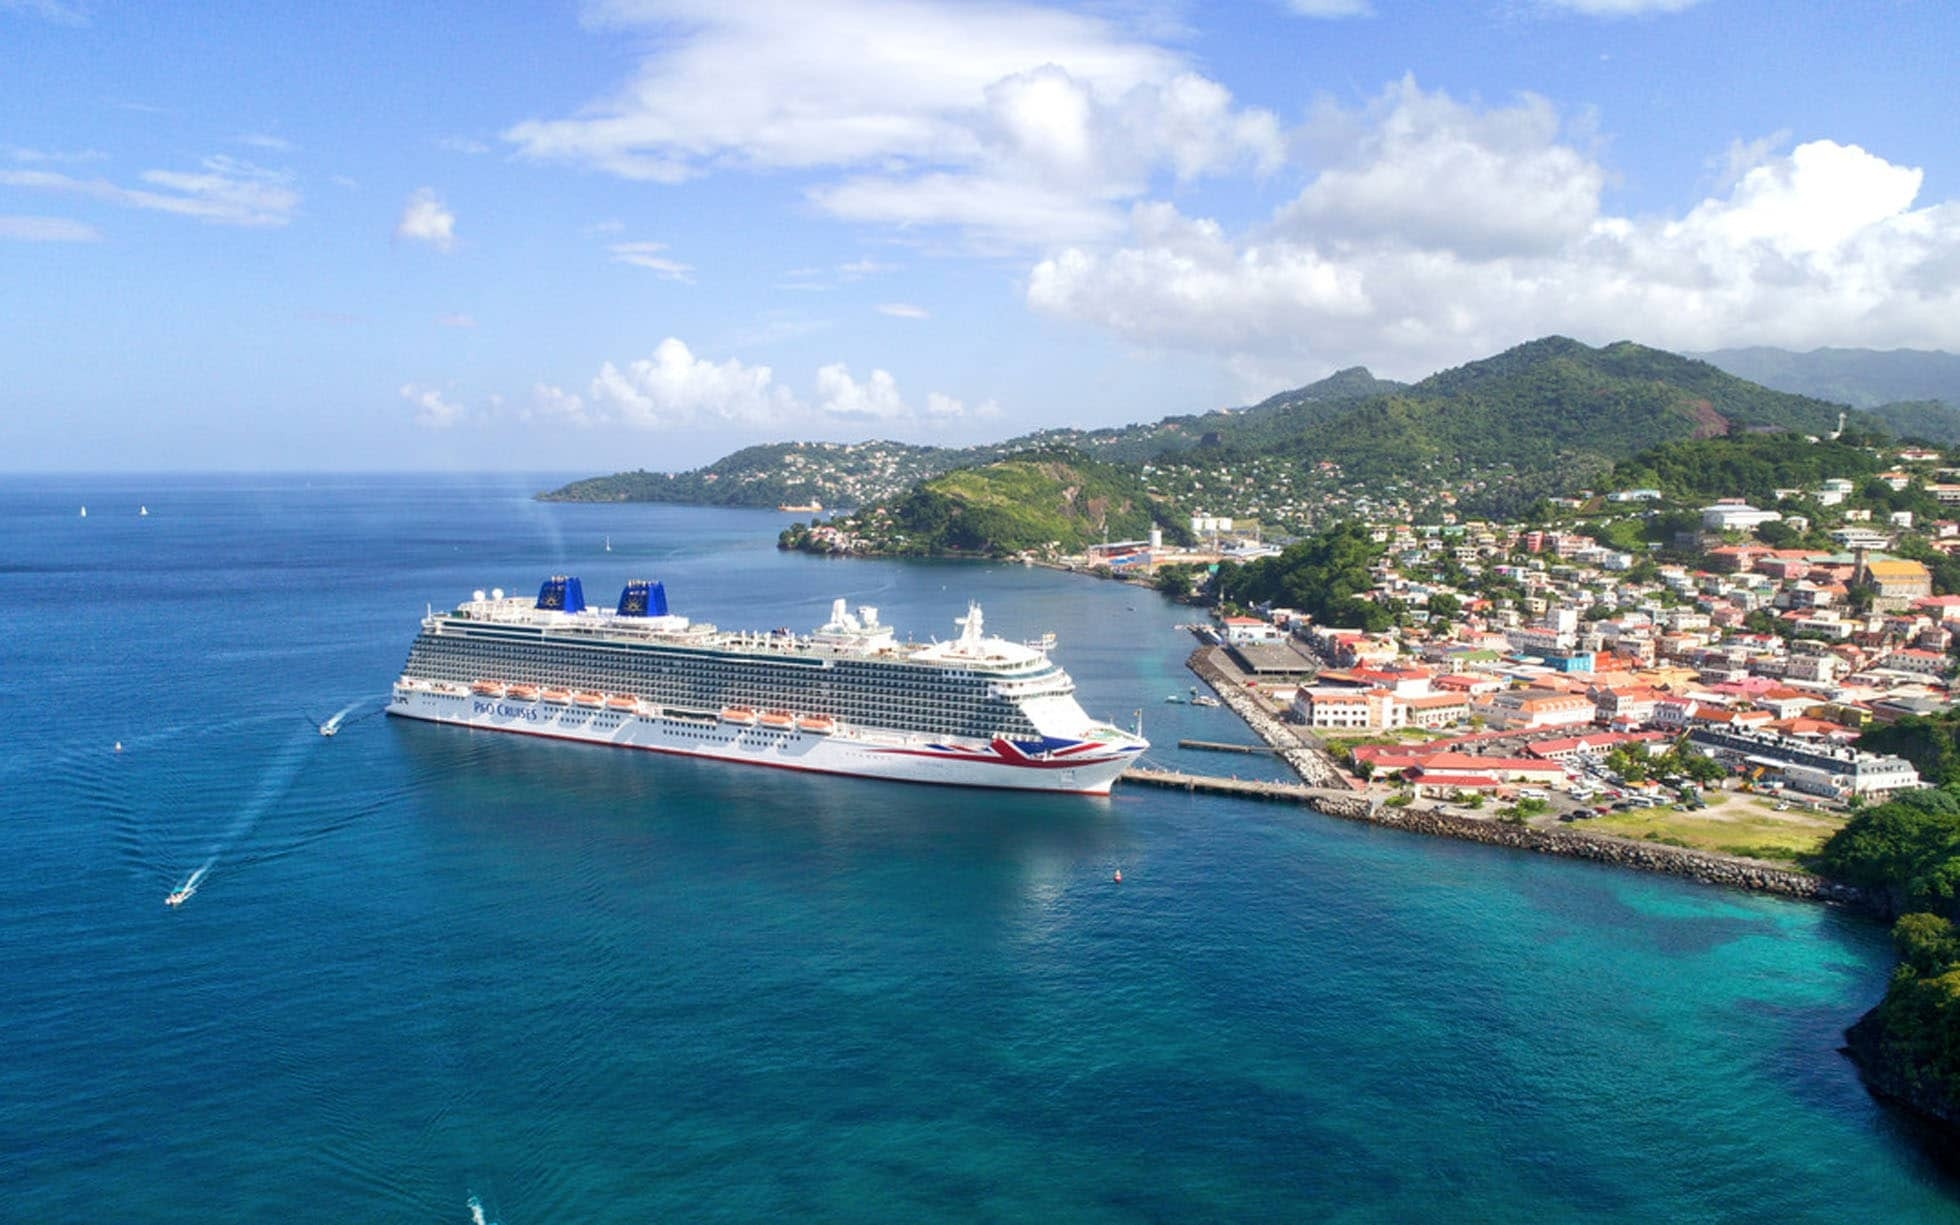 P&o Cruise Deals 2019/2020 | Telegraph - Travel